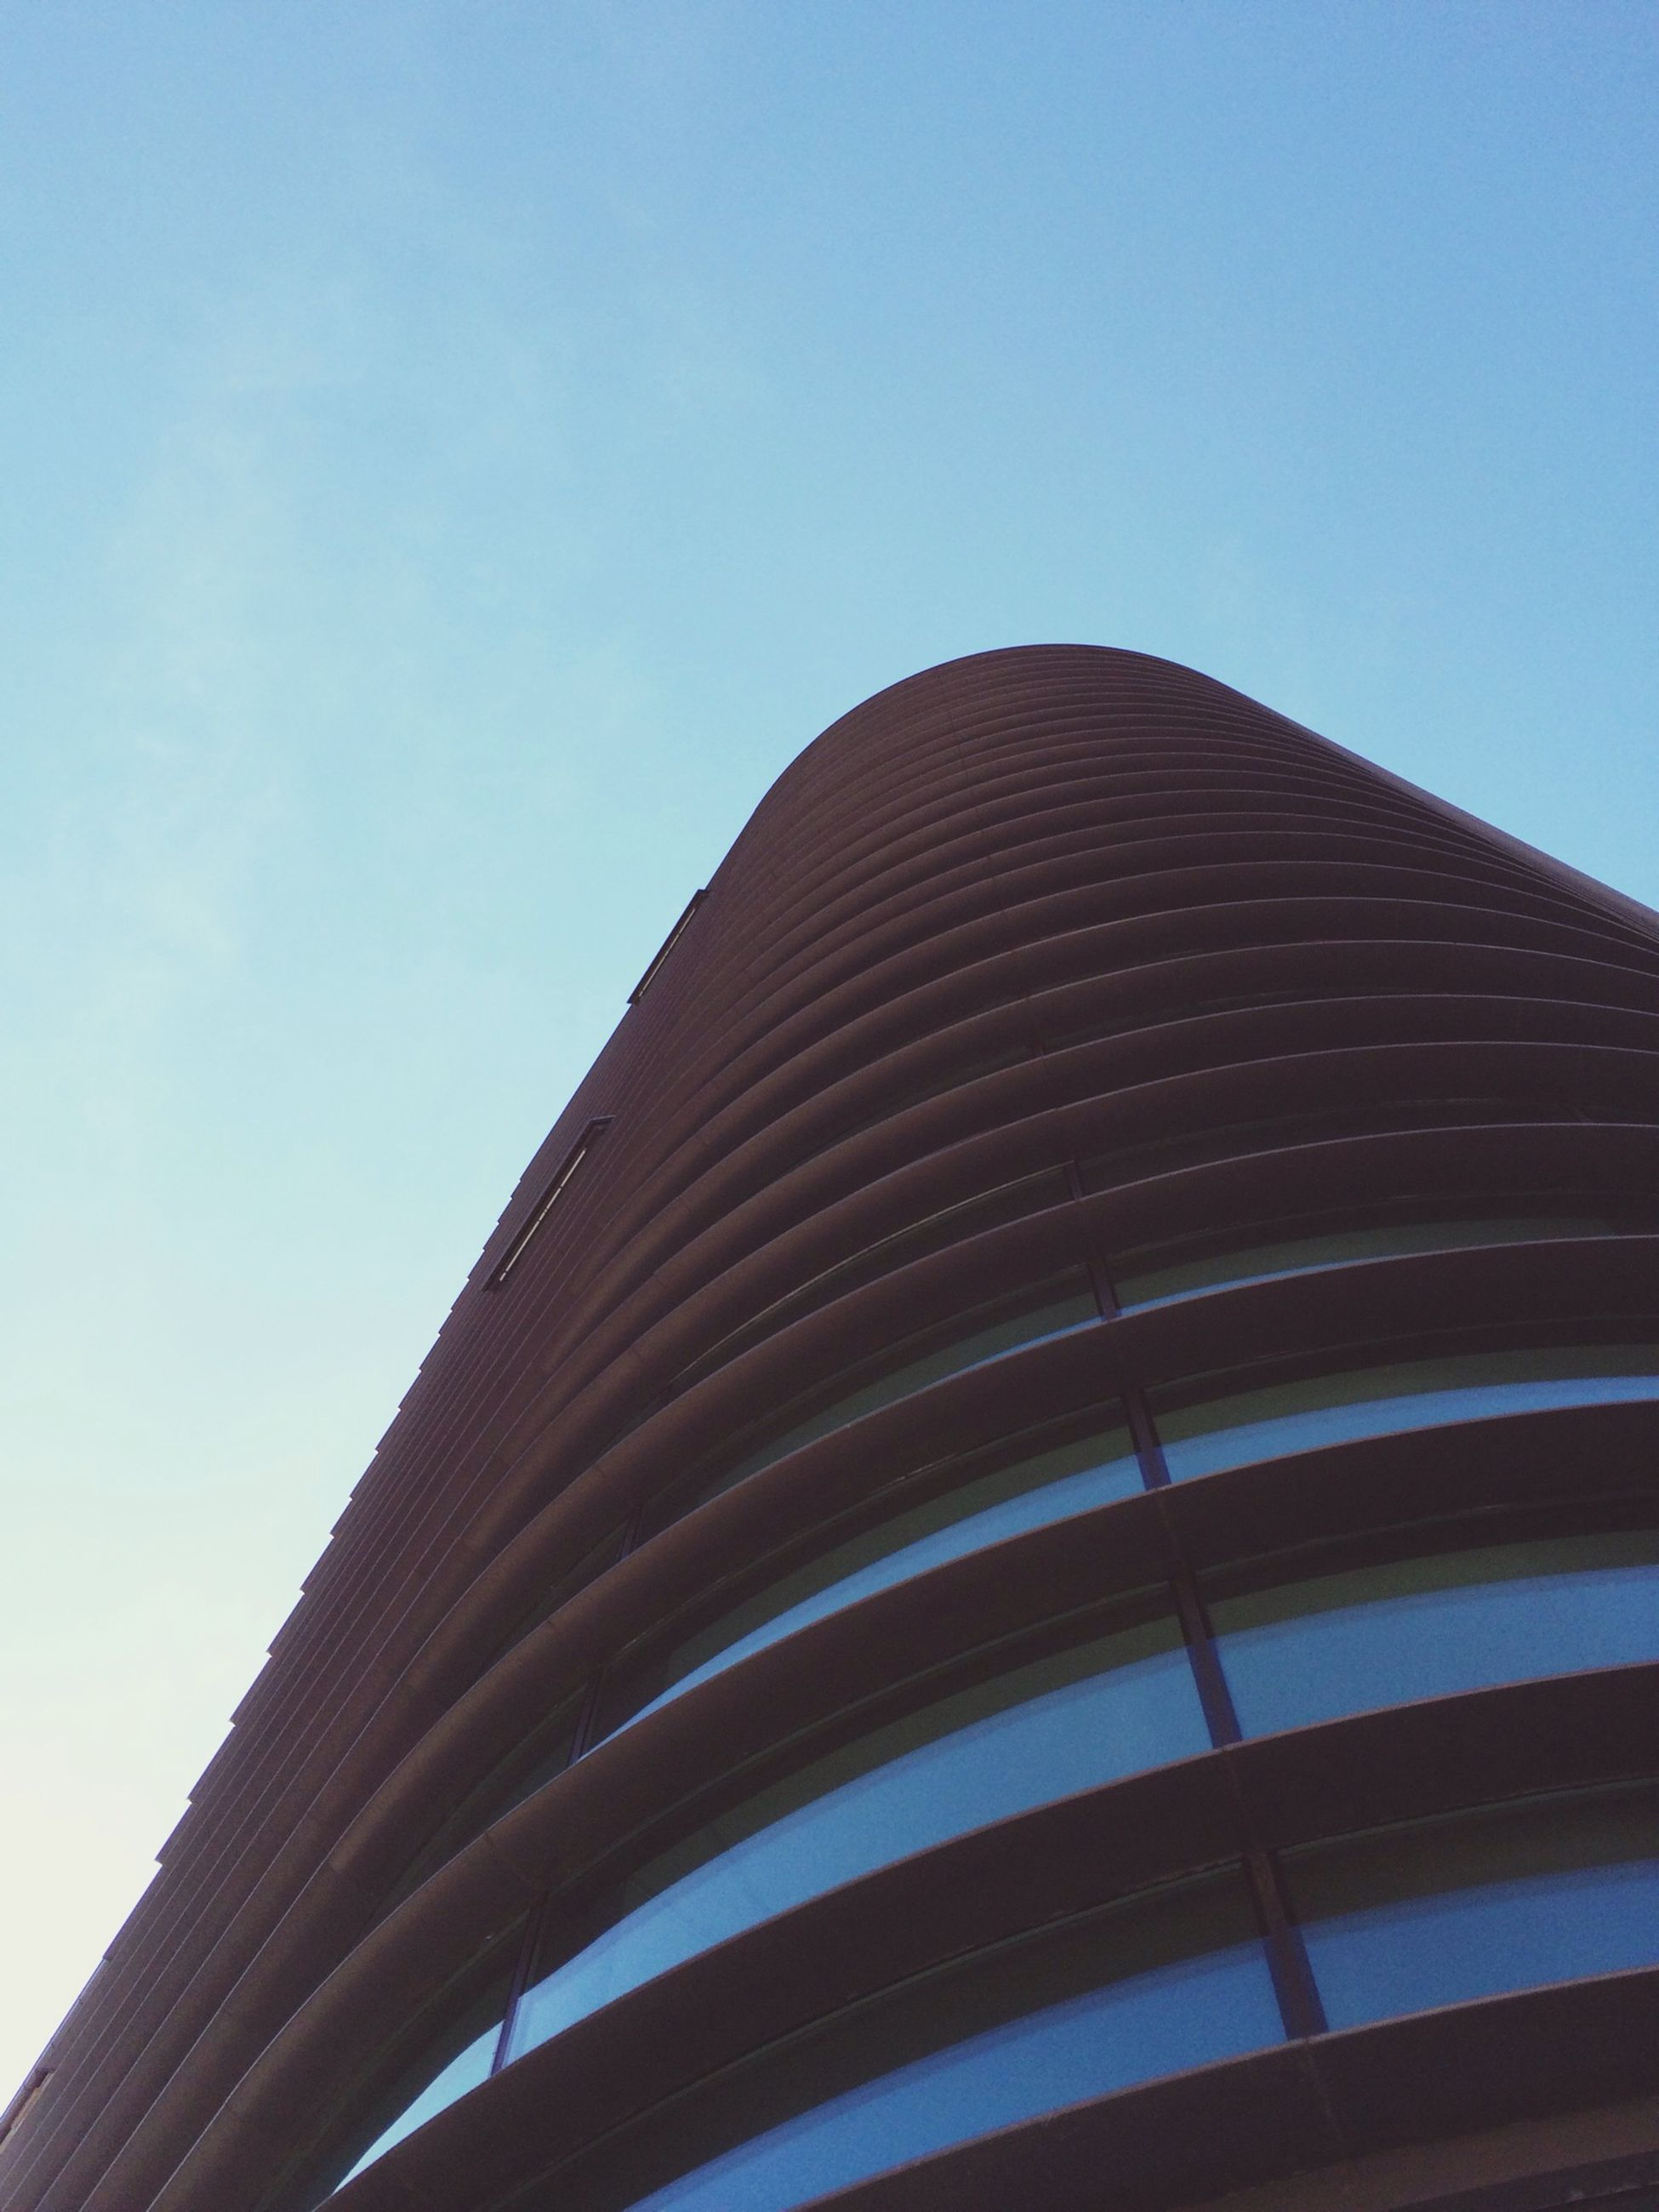 architecture, low angle view, built structure, building exterior, clear sky, modern, tall - high, office building, city, blue, building, tower, skyscraper, sky, pattern, copy space, day, no people, outdoors, architectural feature